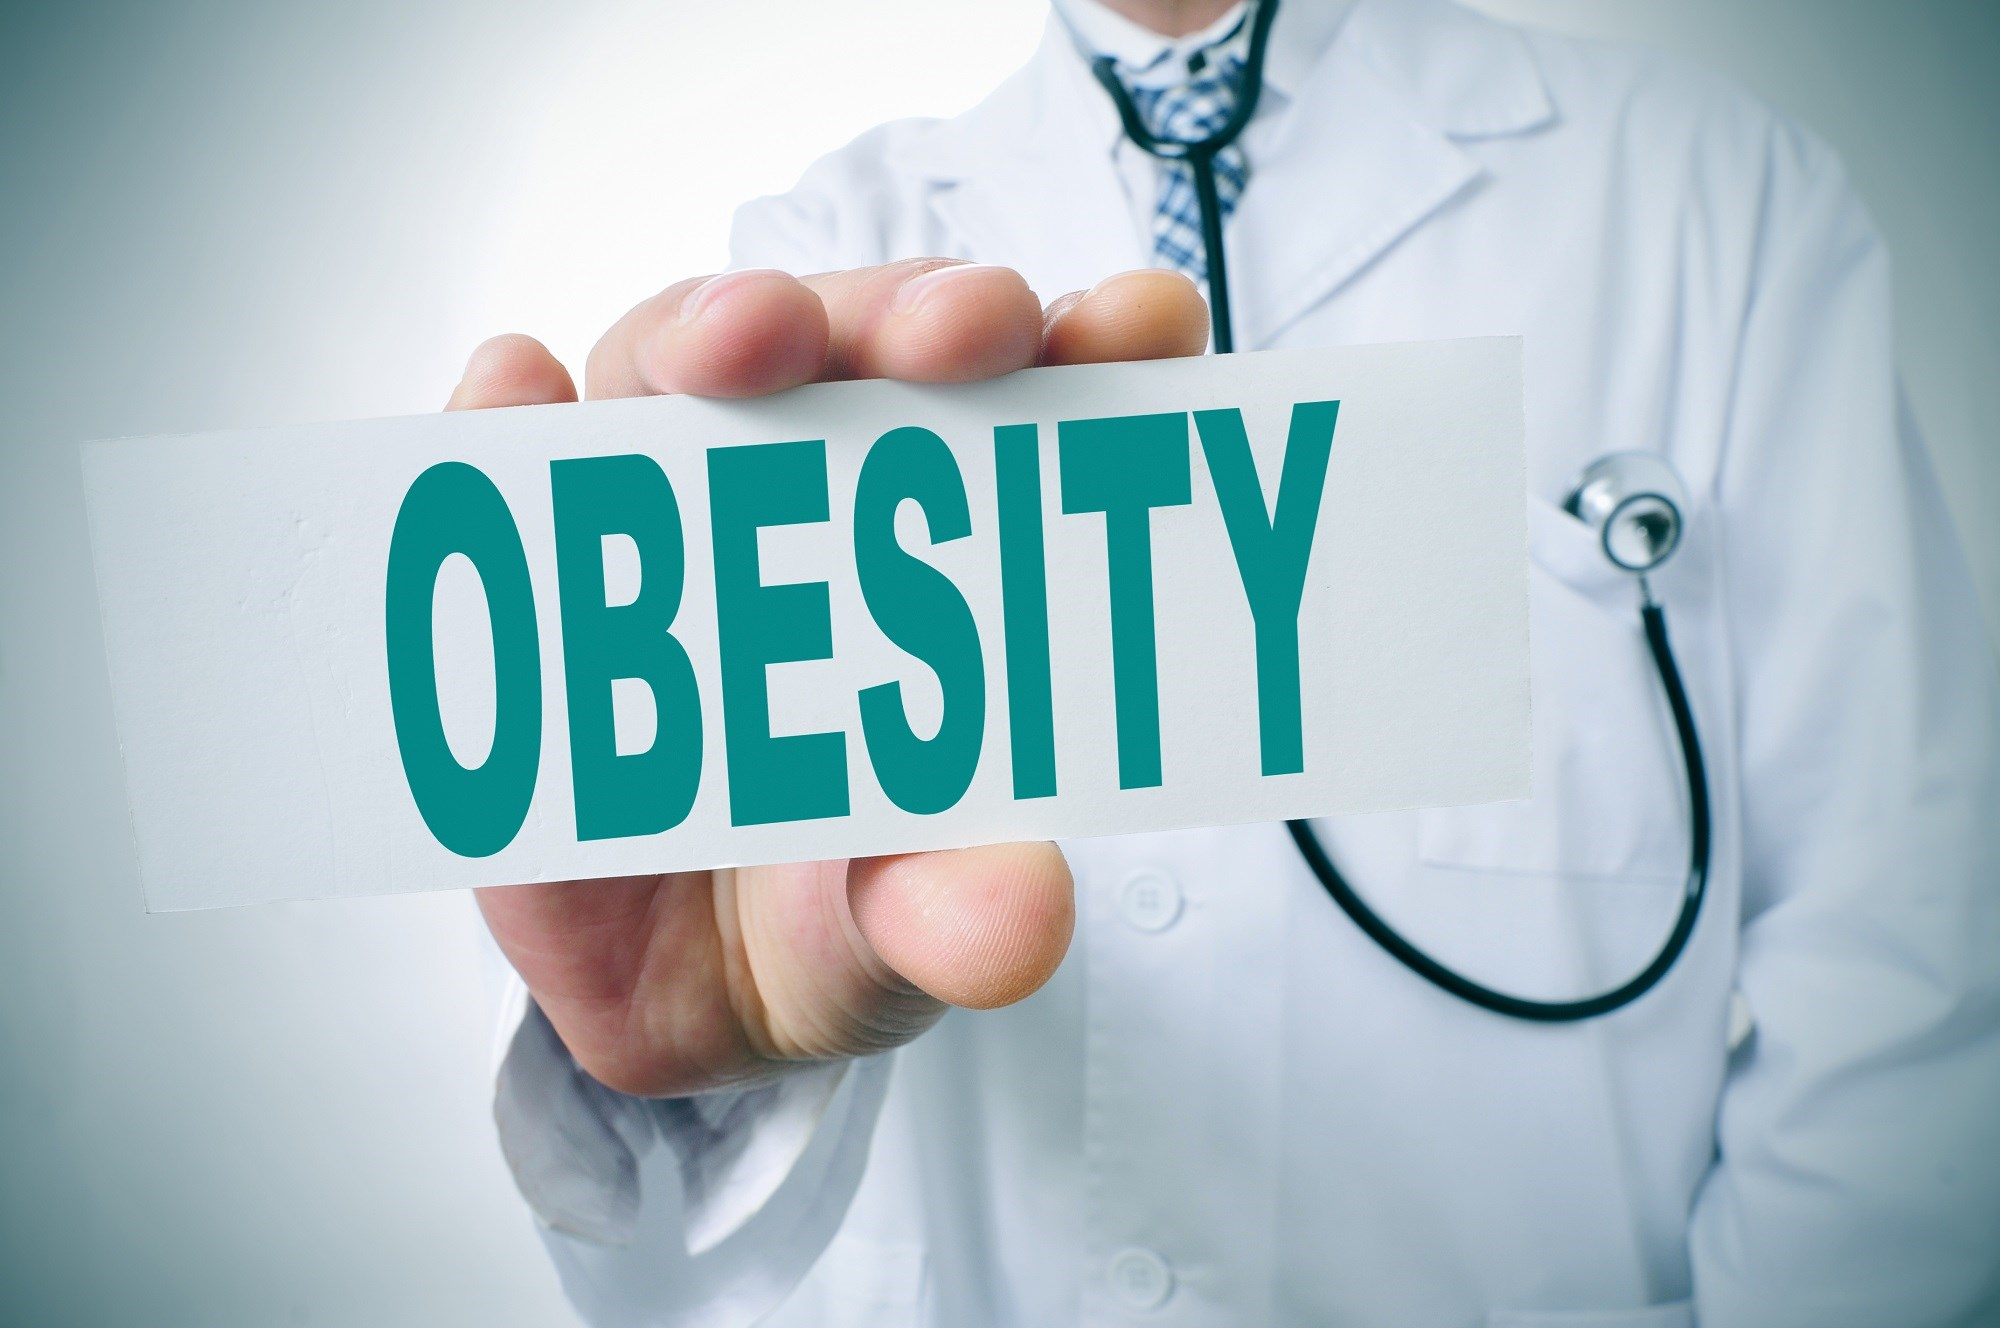 The system was approved in 2016 for temporary use to aid weight loss in adults with obesity.